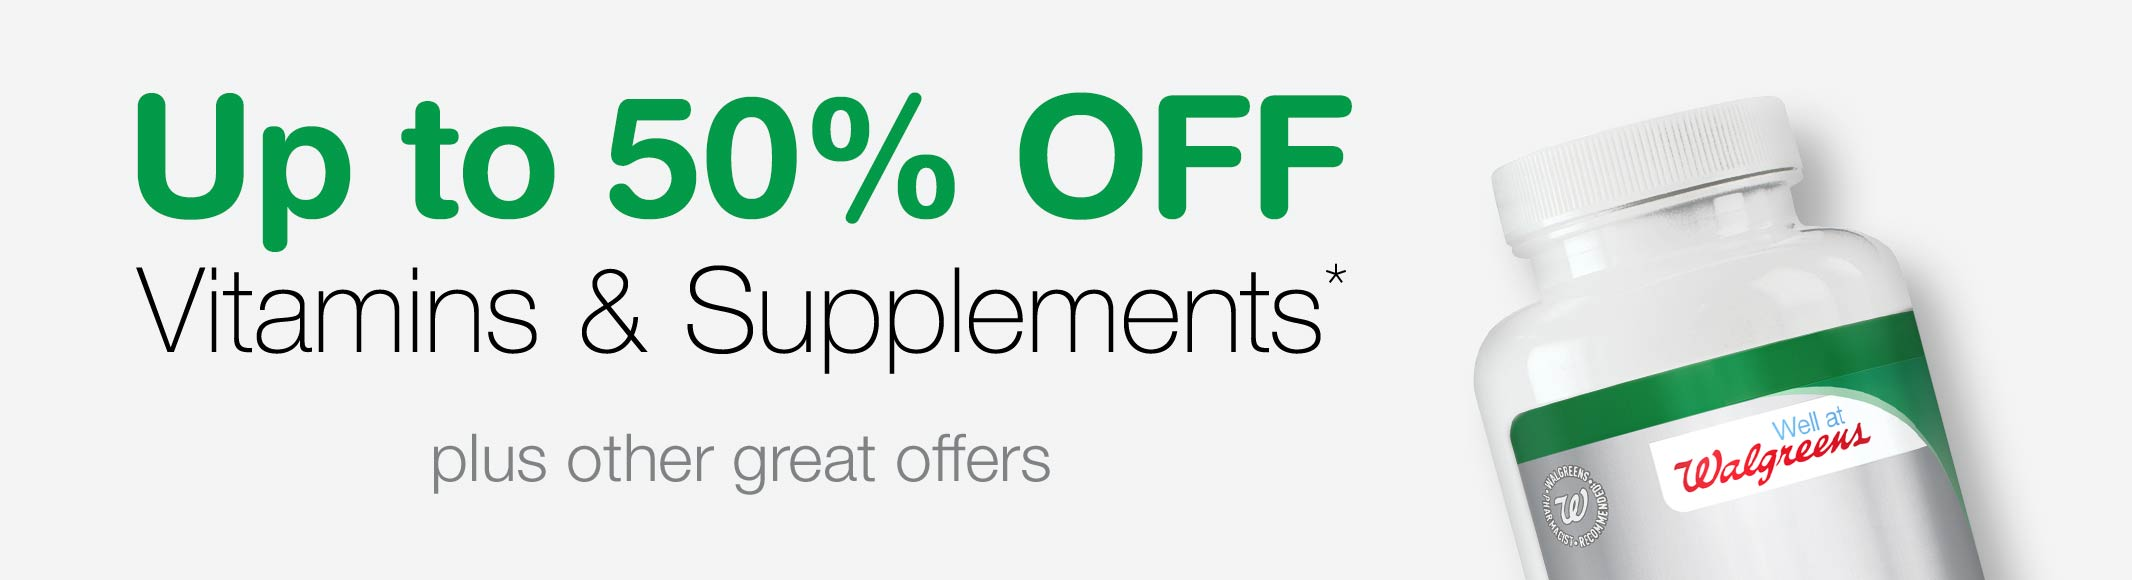 Up to 50% OFF Vitamins & Supplements* plus other great offers.